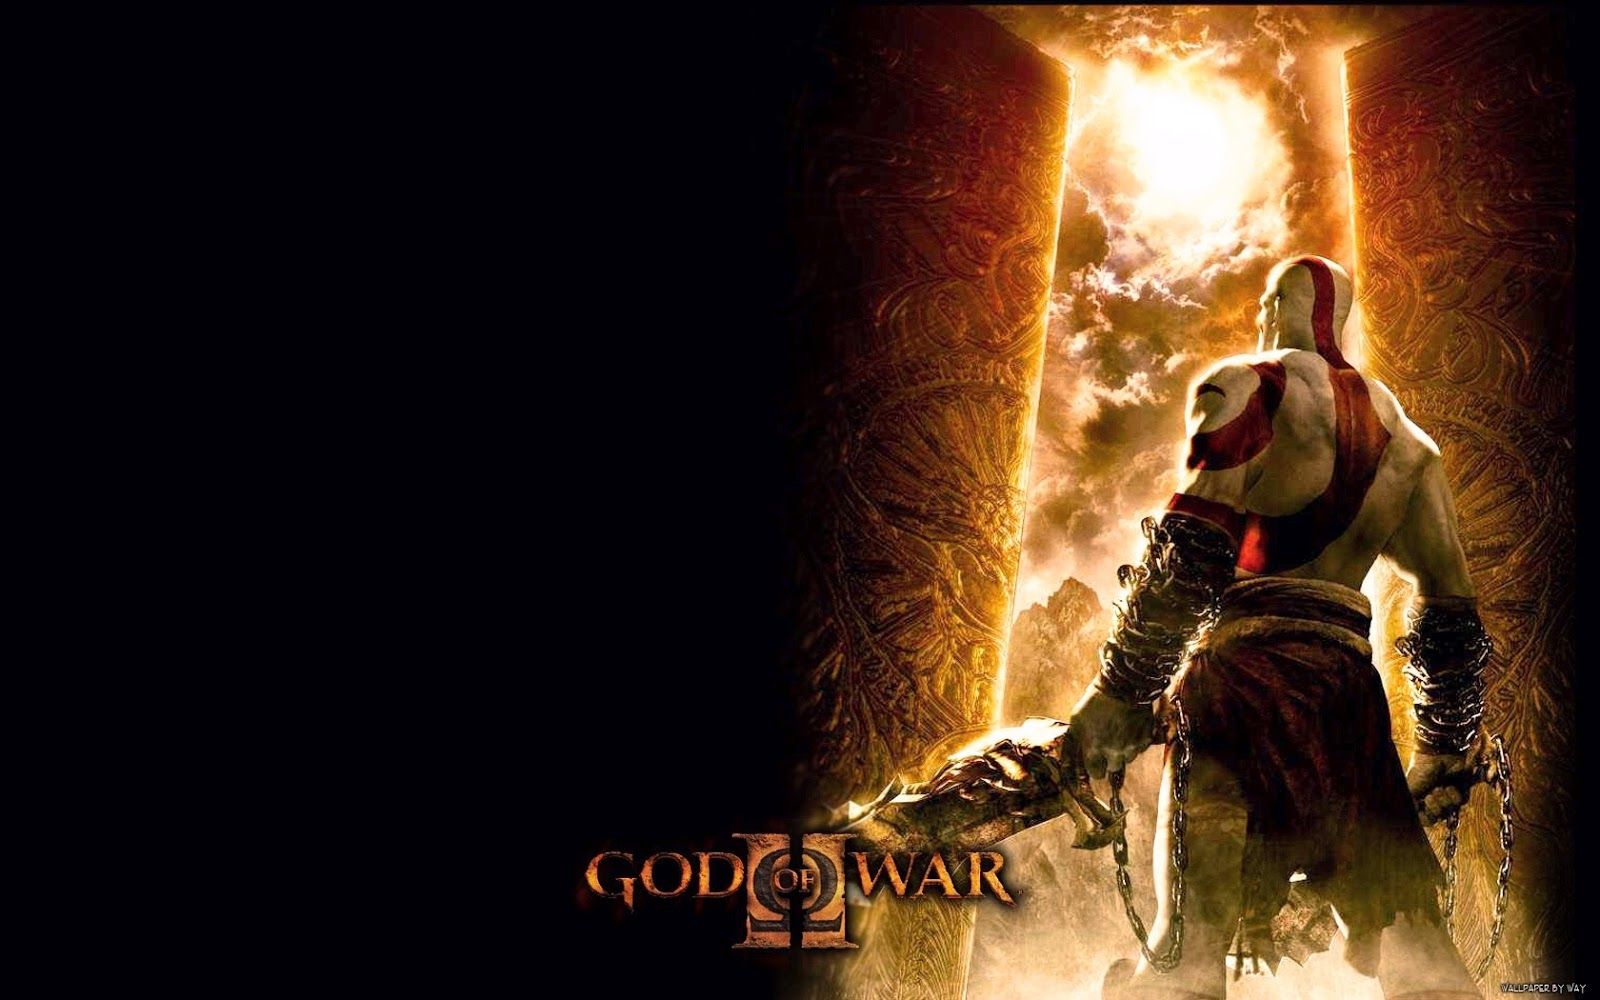 god of war, 2015 title